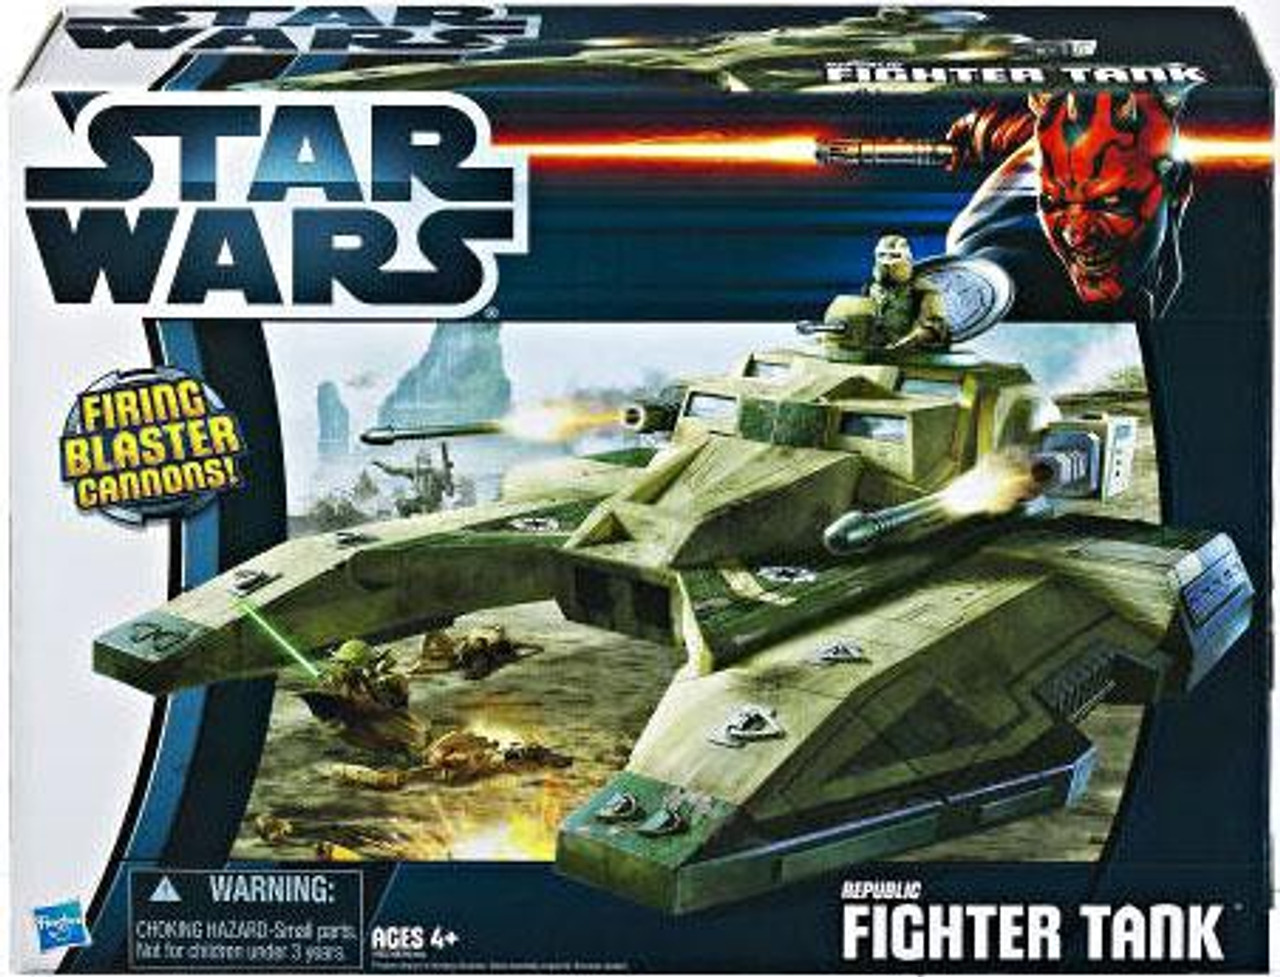 Star Wars Revenge of the Sith Vehicles 2012 Republic Fighter Tank Action Figure Vehicle